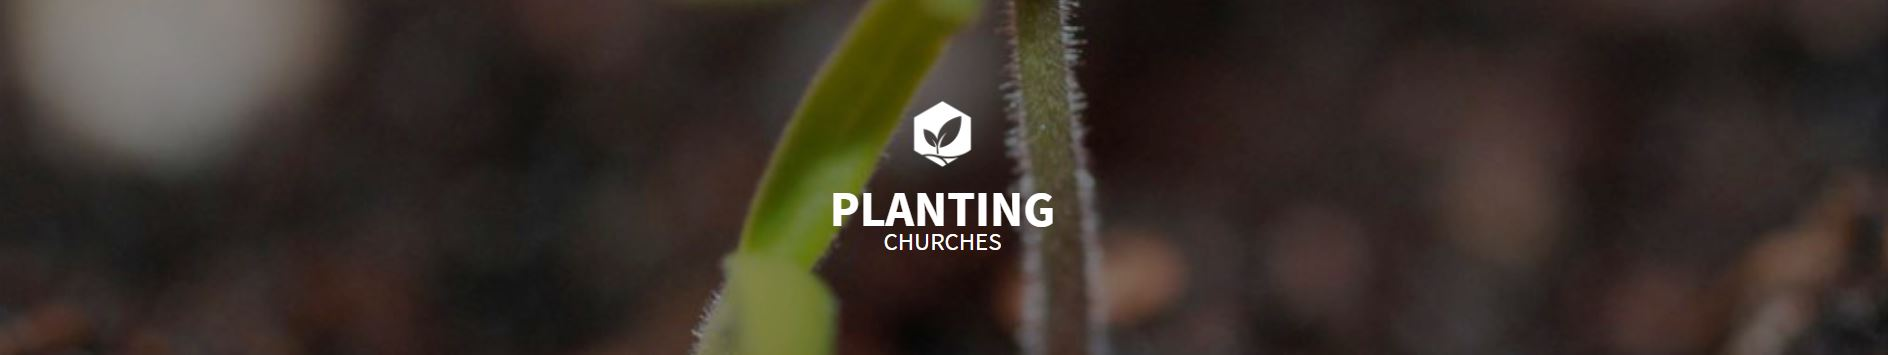 SBCV Planting Churches